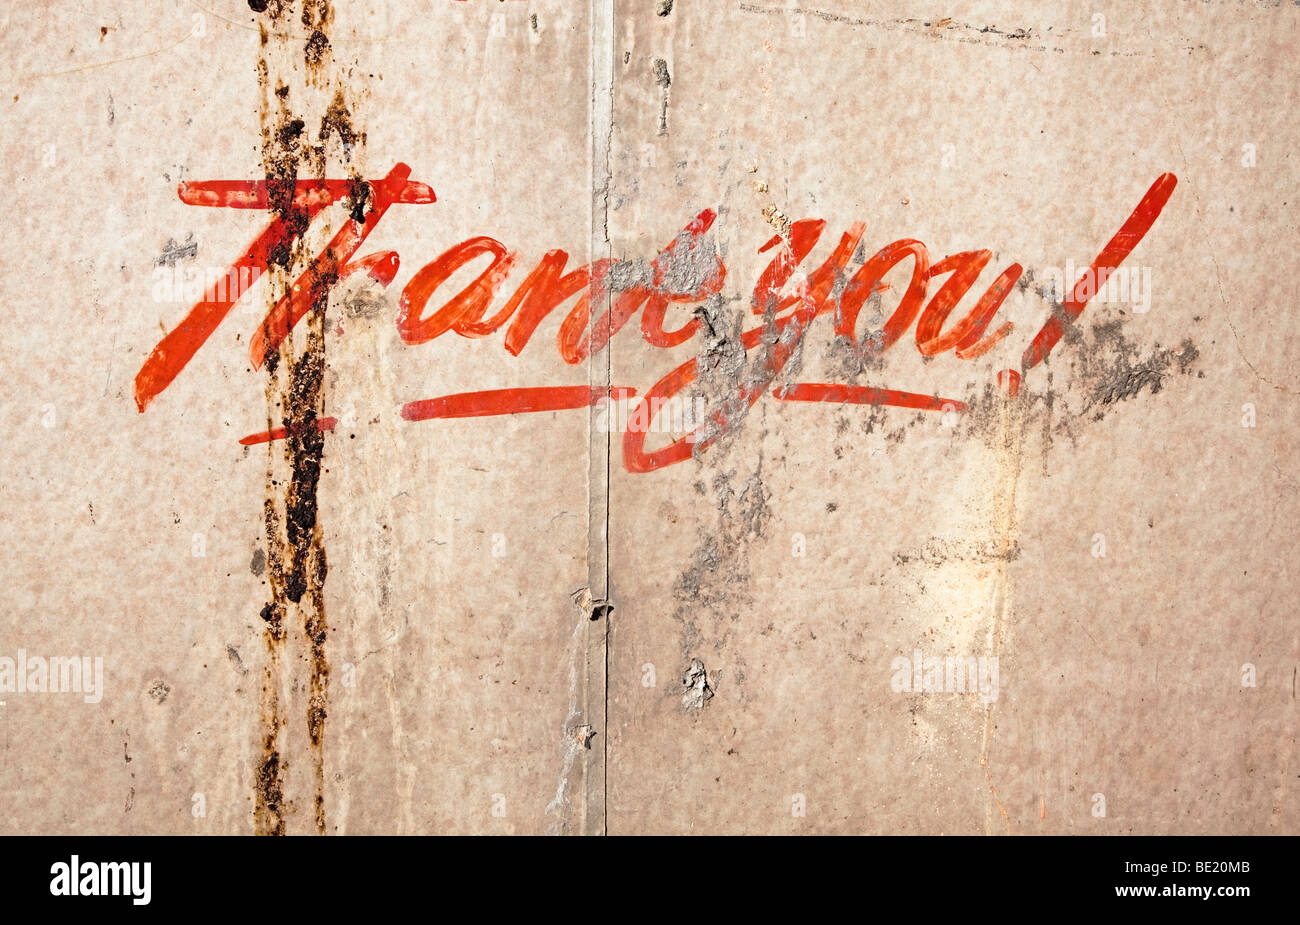 thank you sign painted on wall - Stock Image